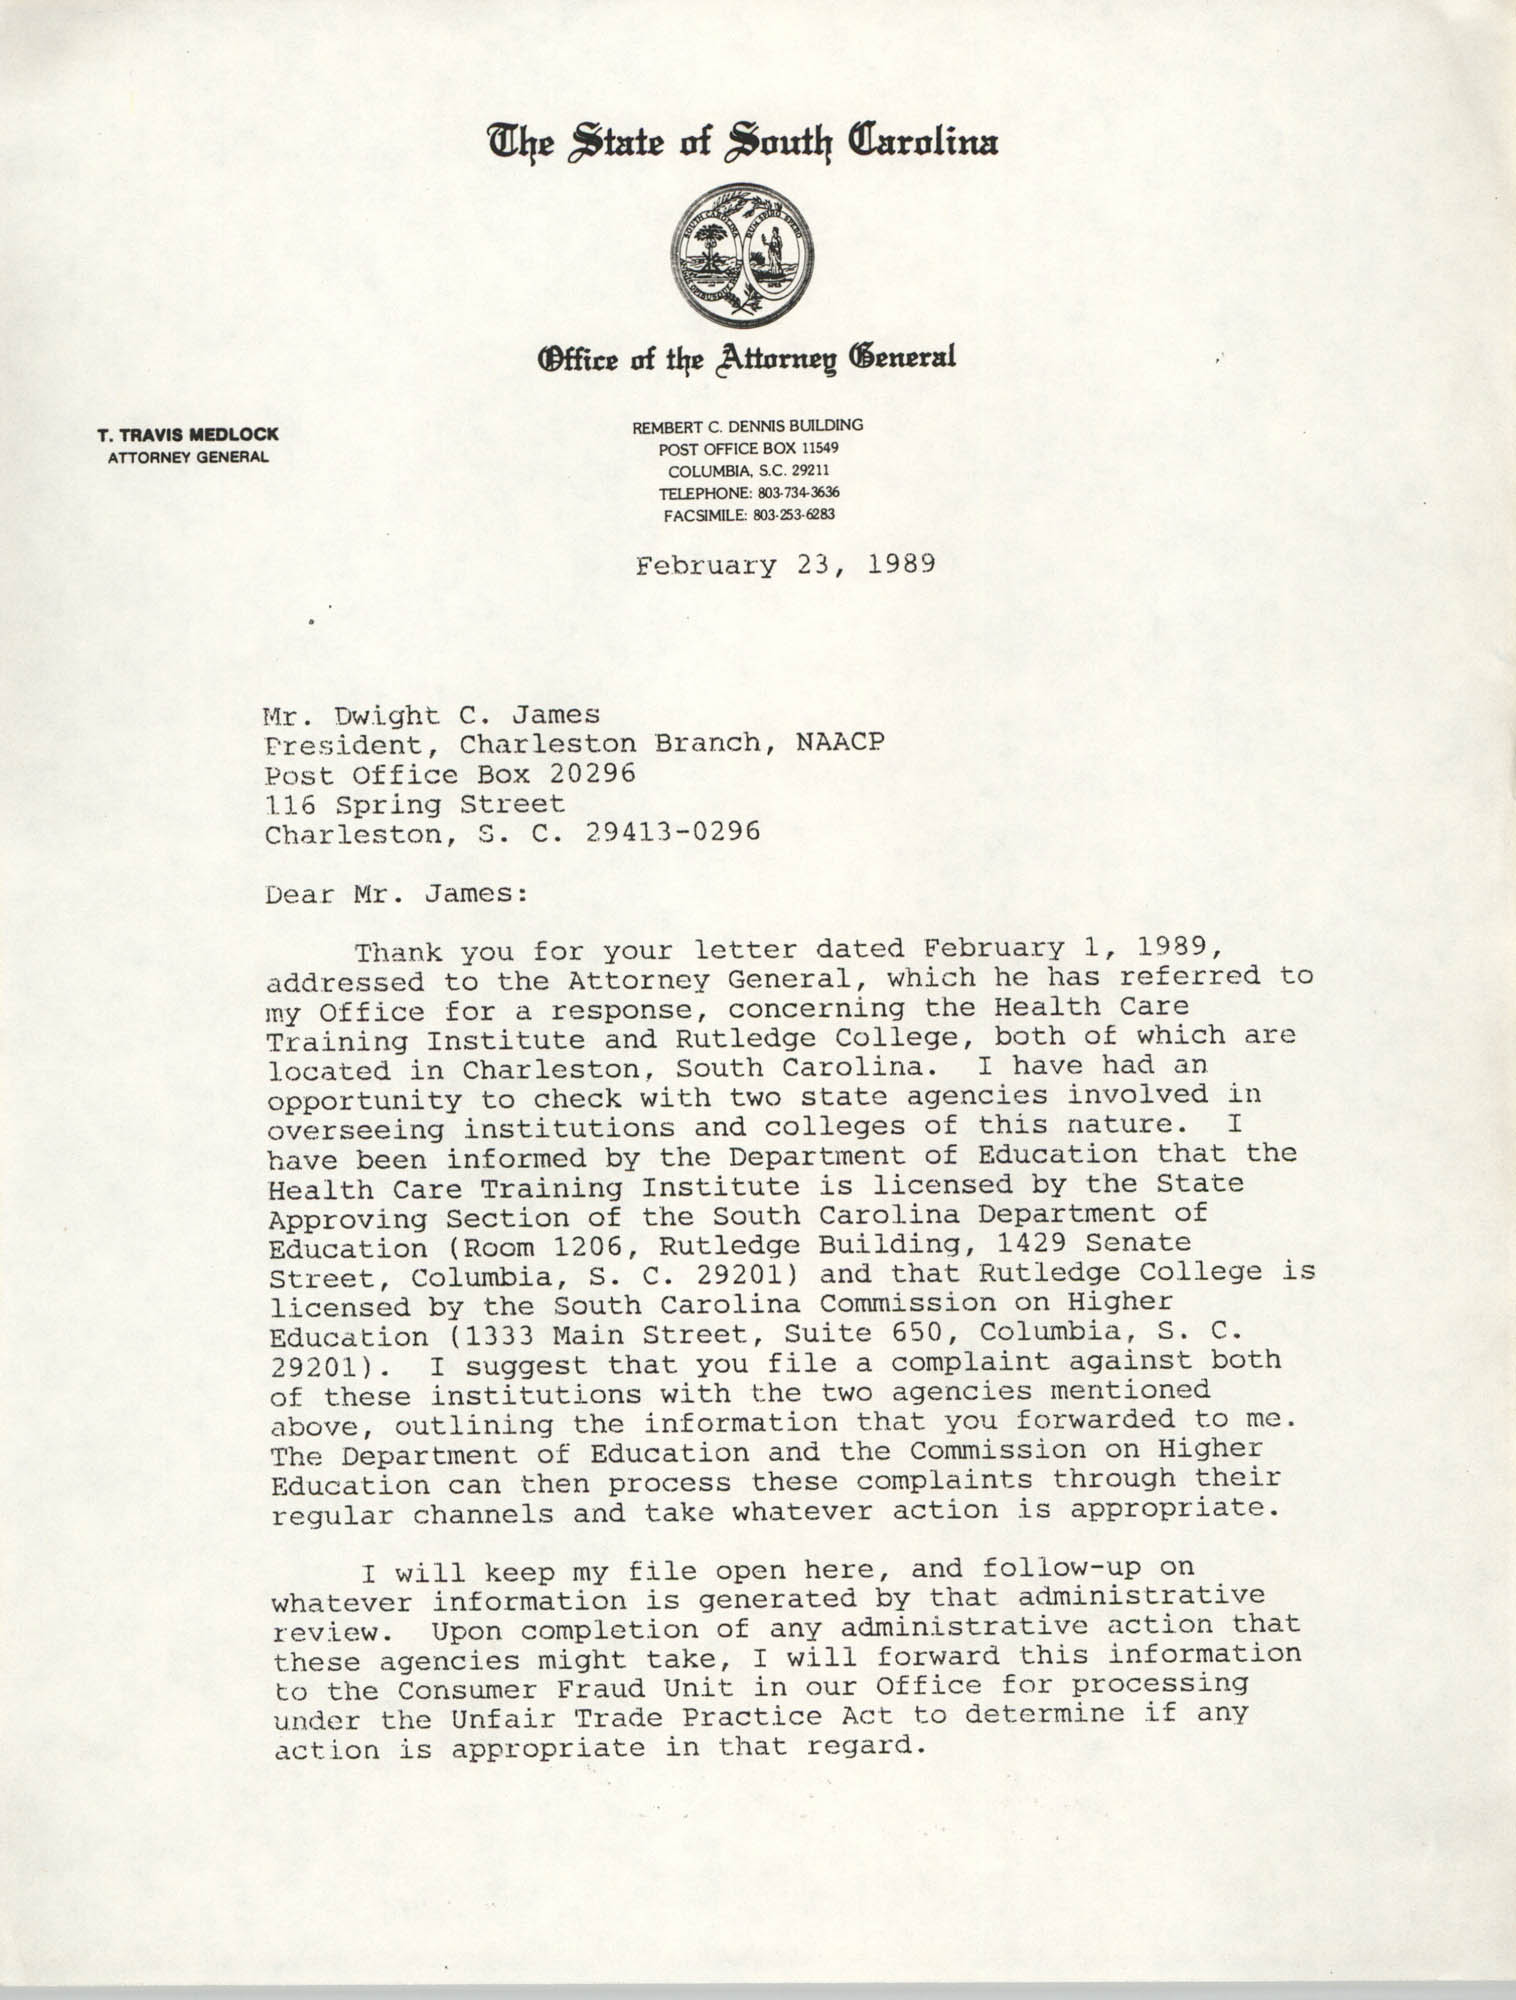 Letter from J. Emory Smith Jr. to Dwight C. James, February 23, 1989